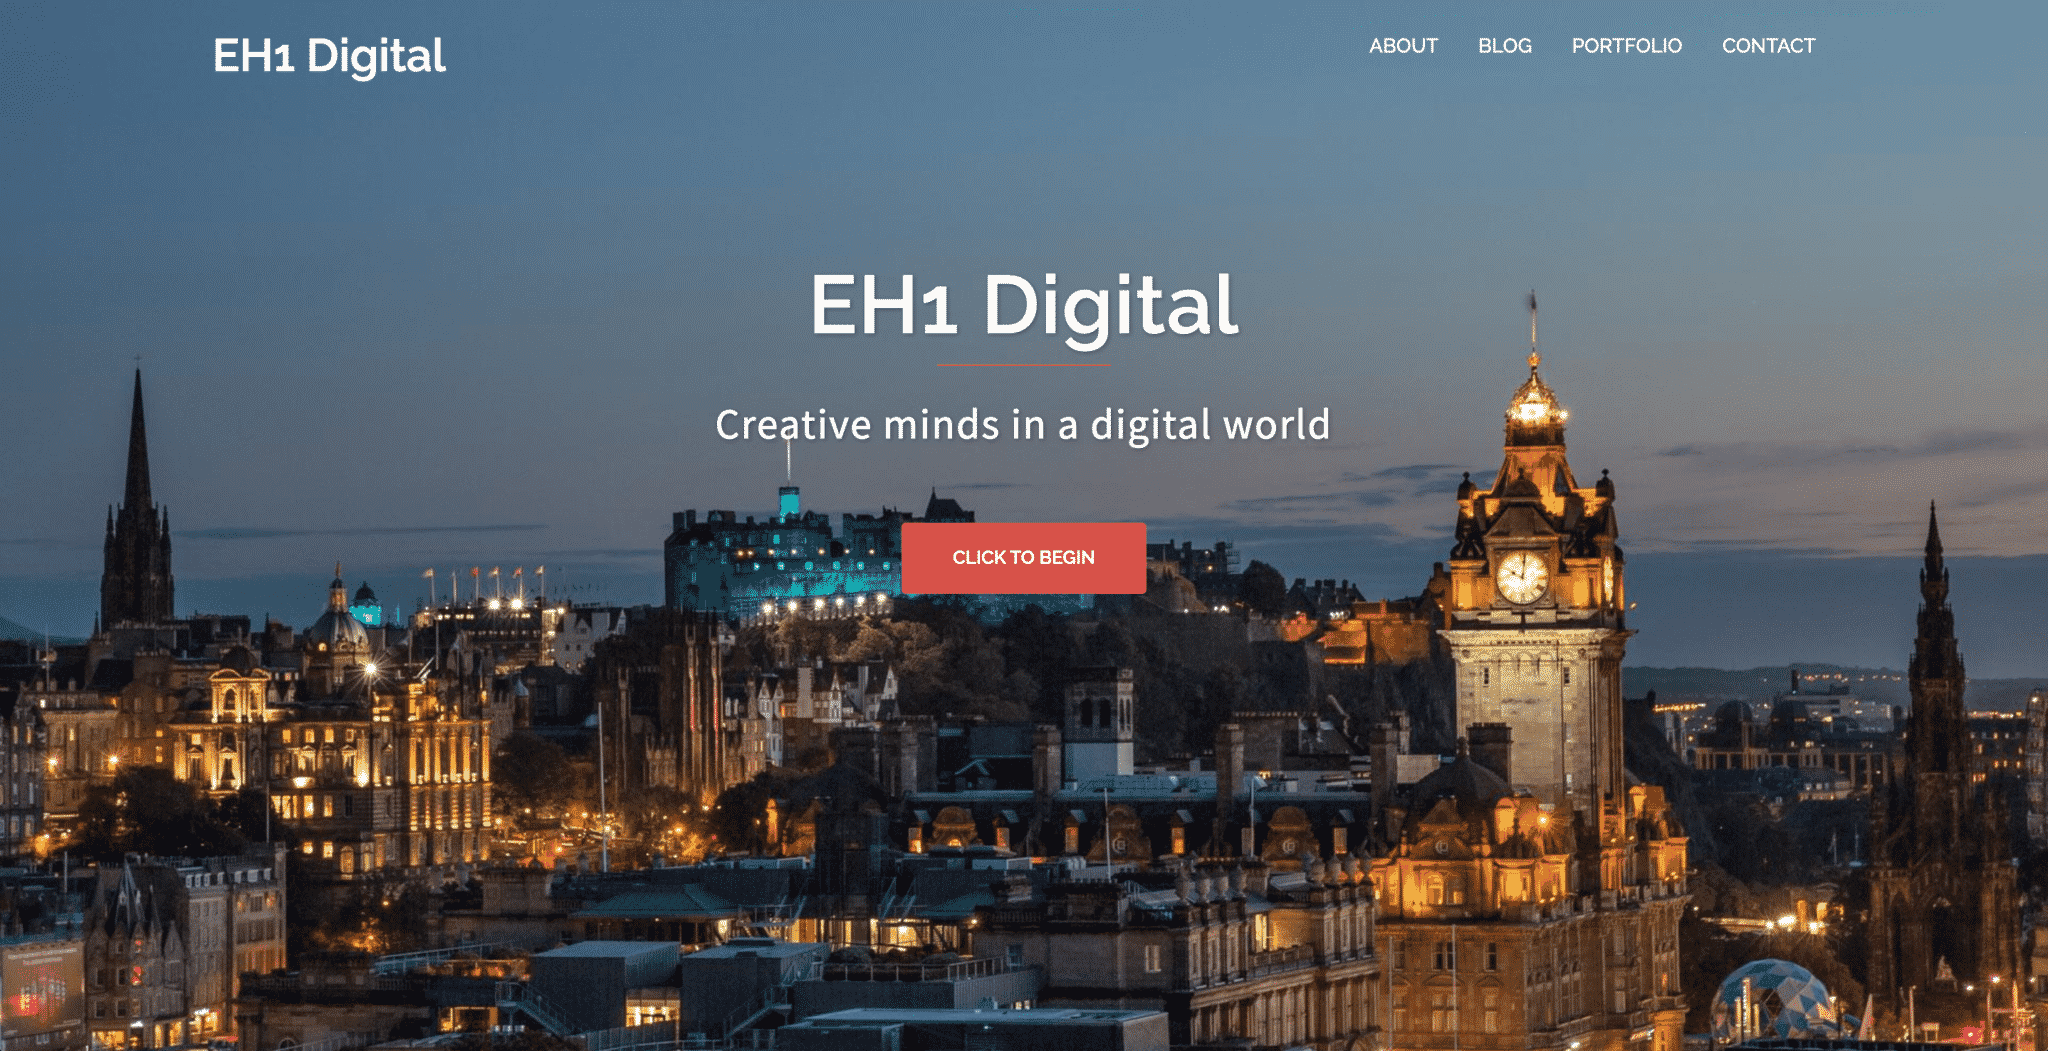 A showcase of a website created by KY Designs for EH1 Digital